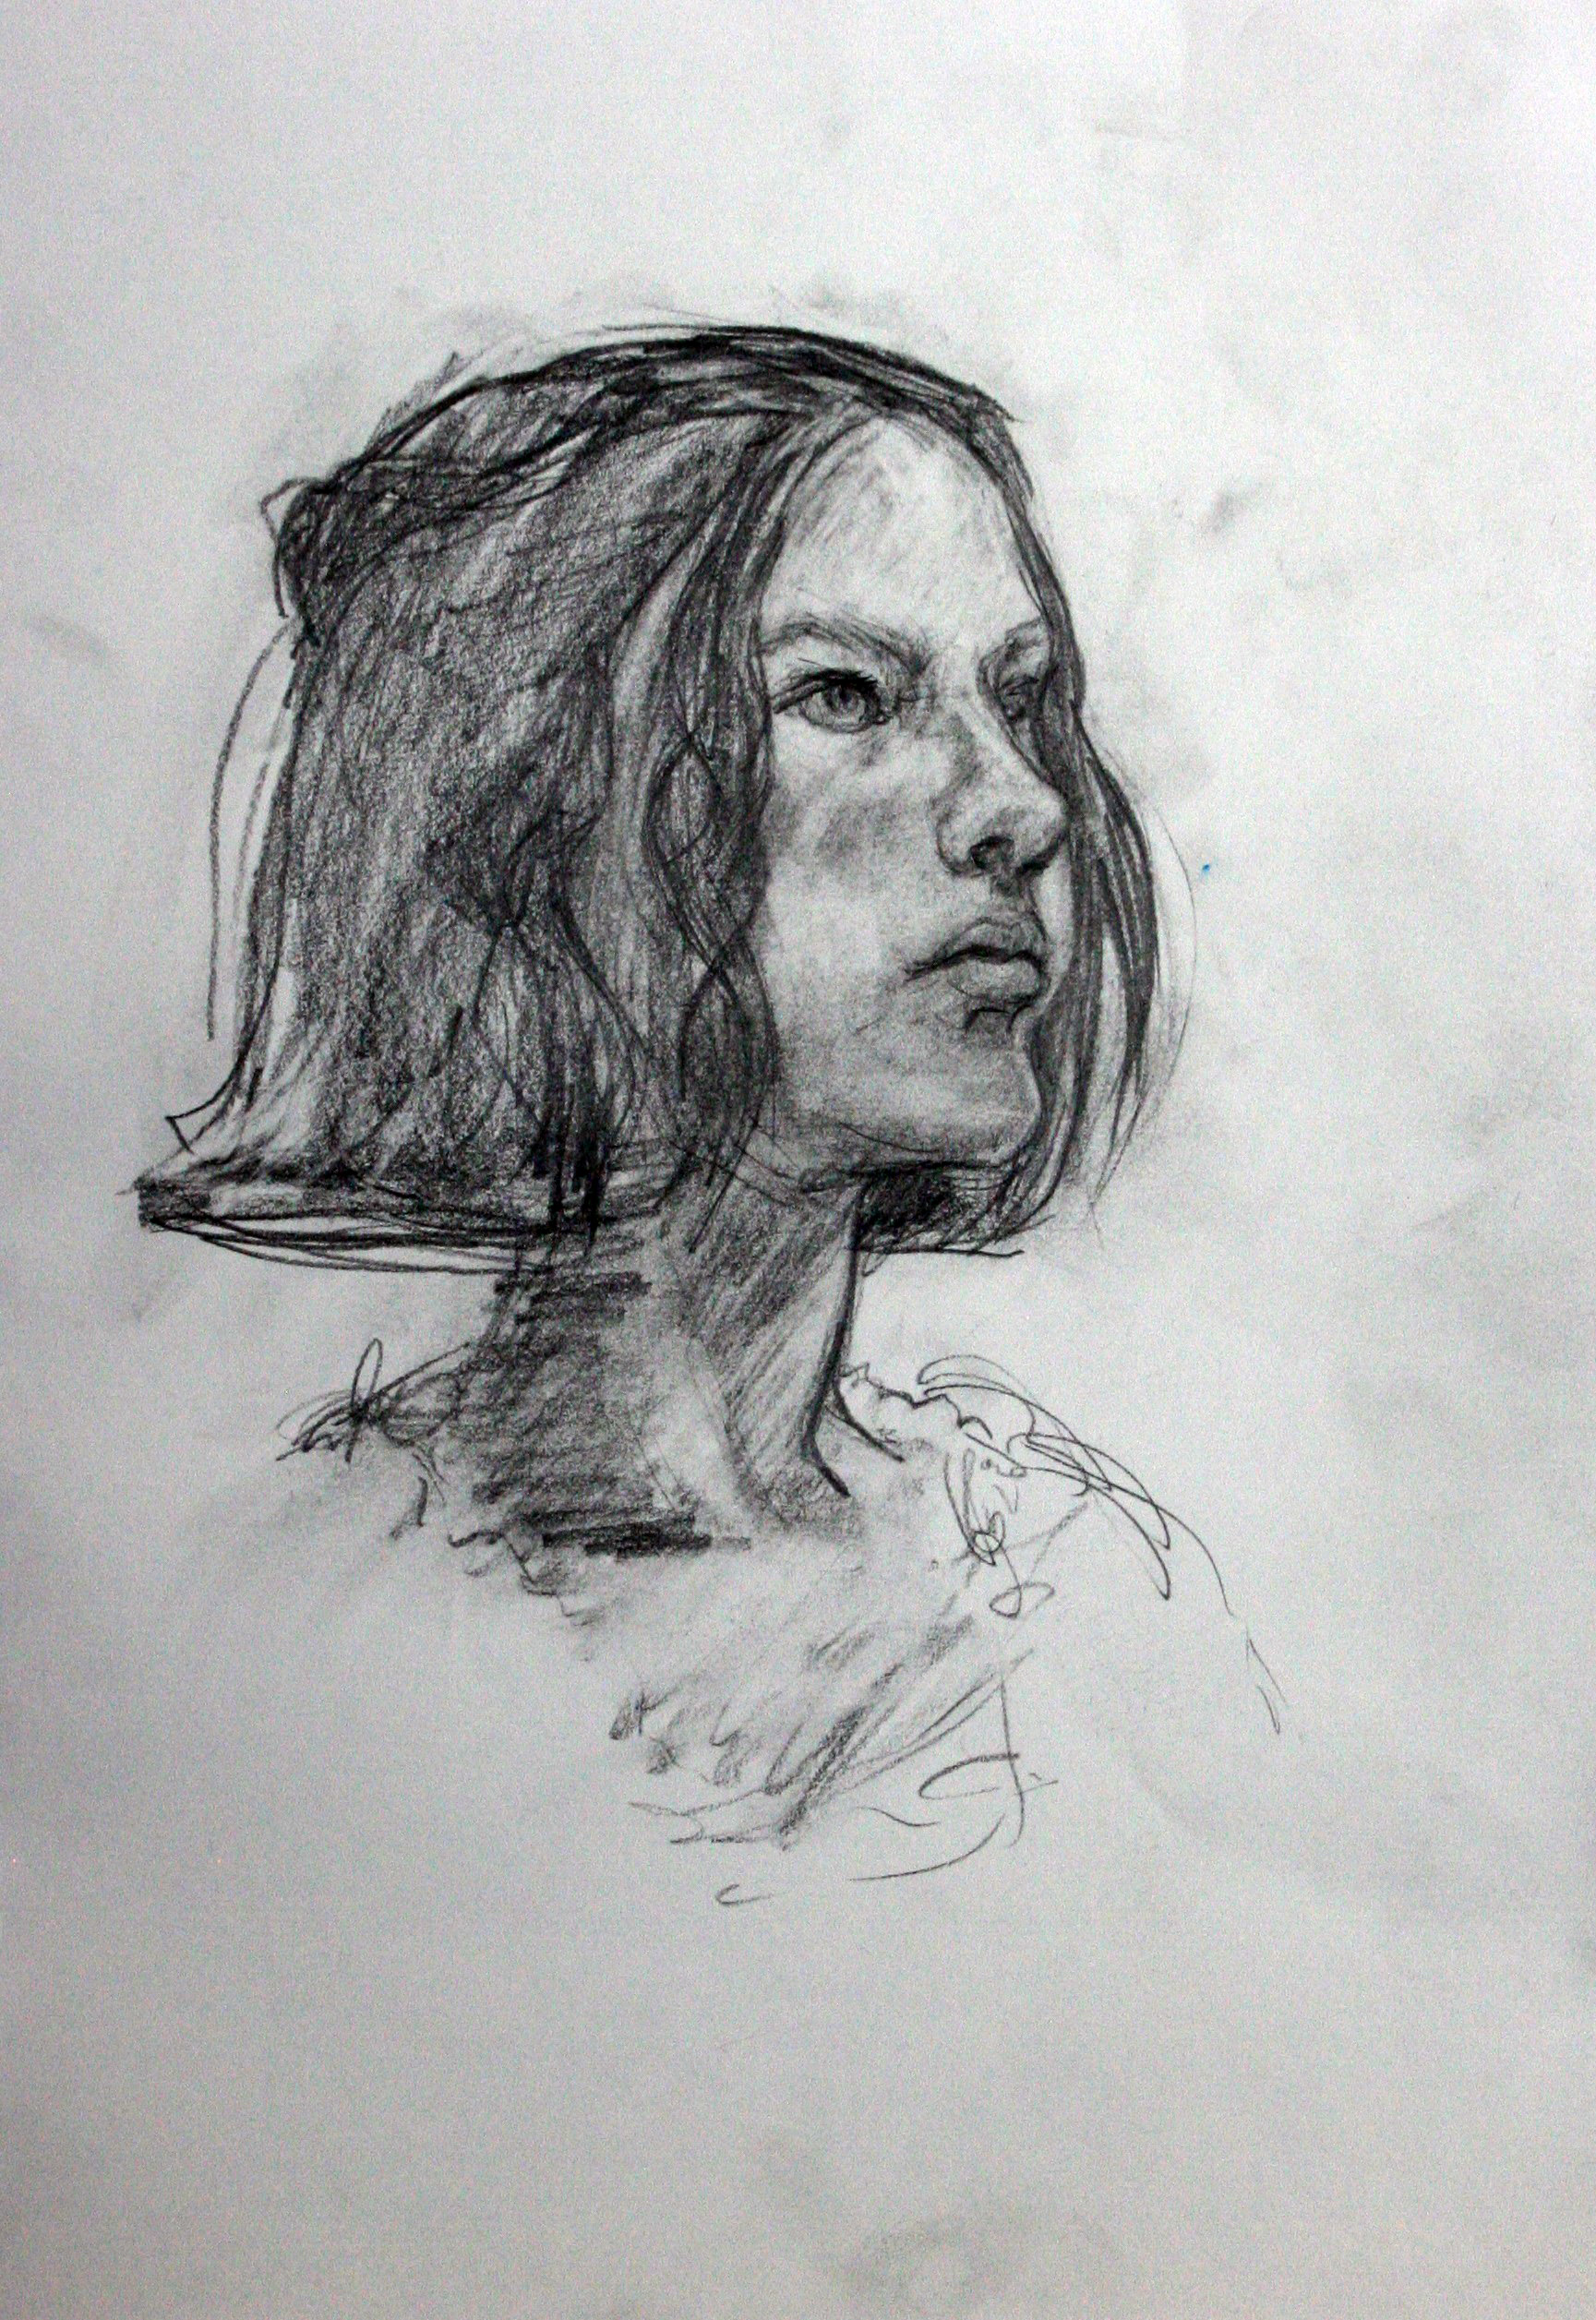 Jesse Smith - Pencil and Wash